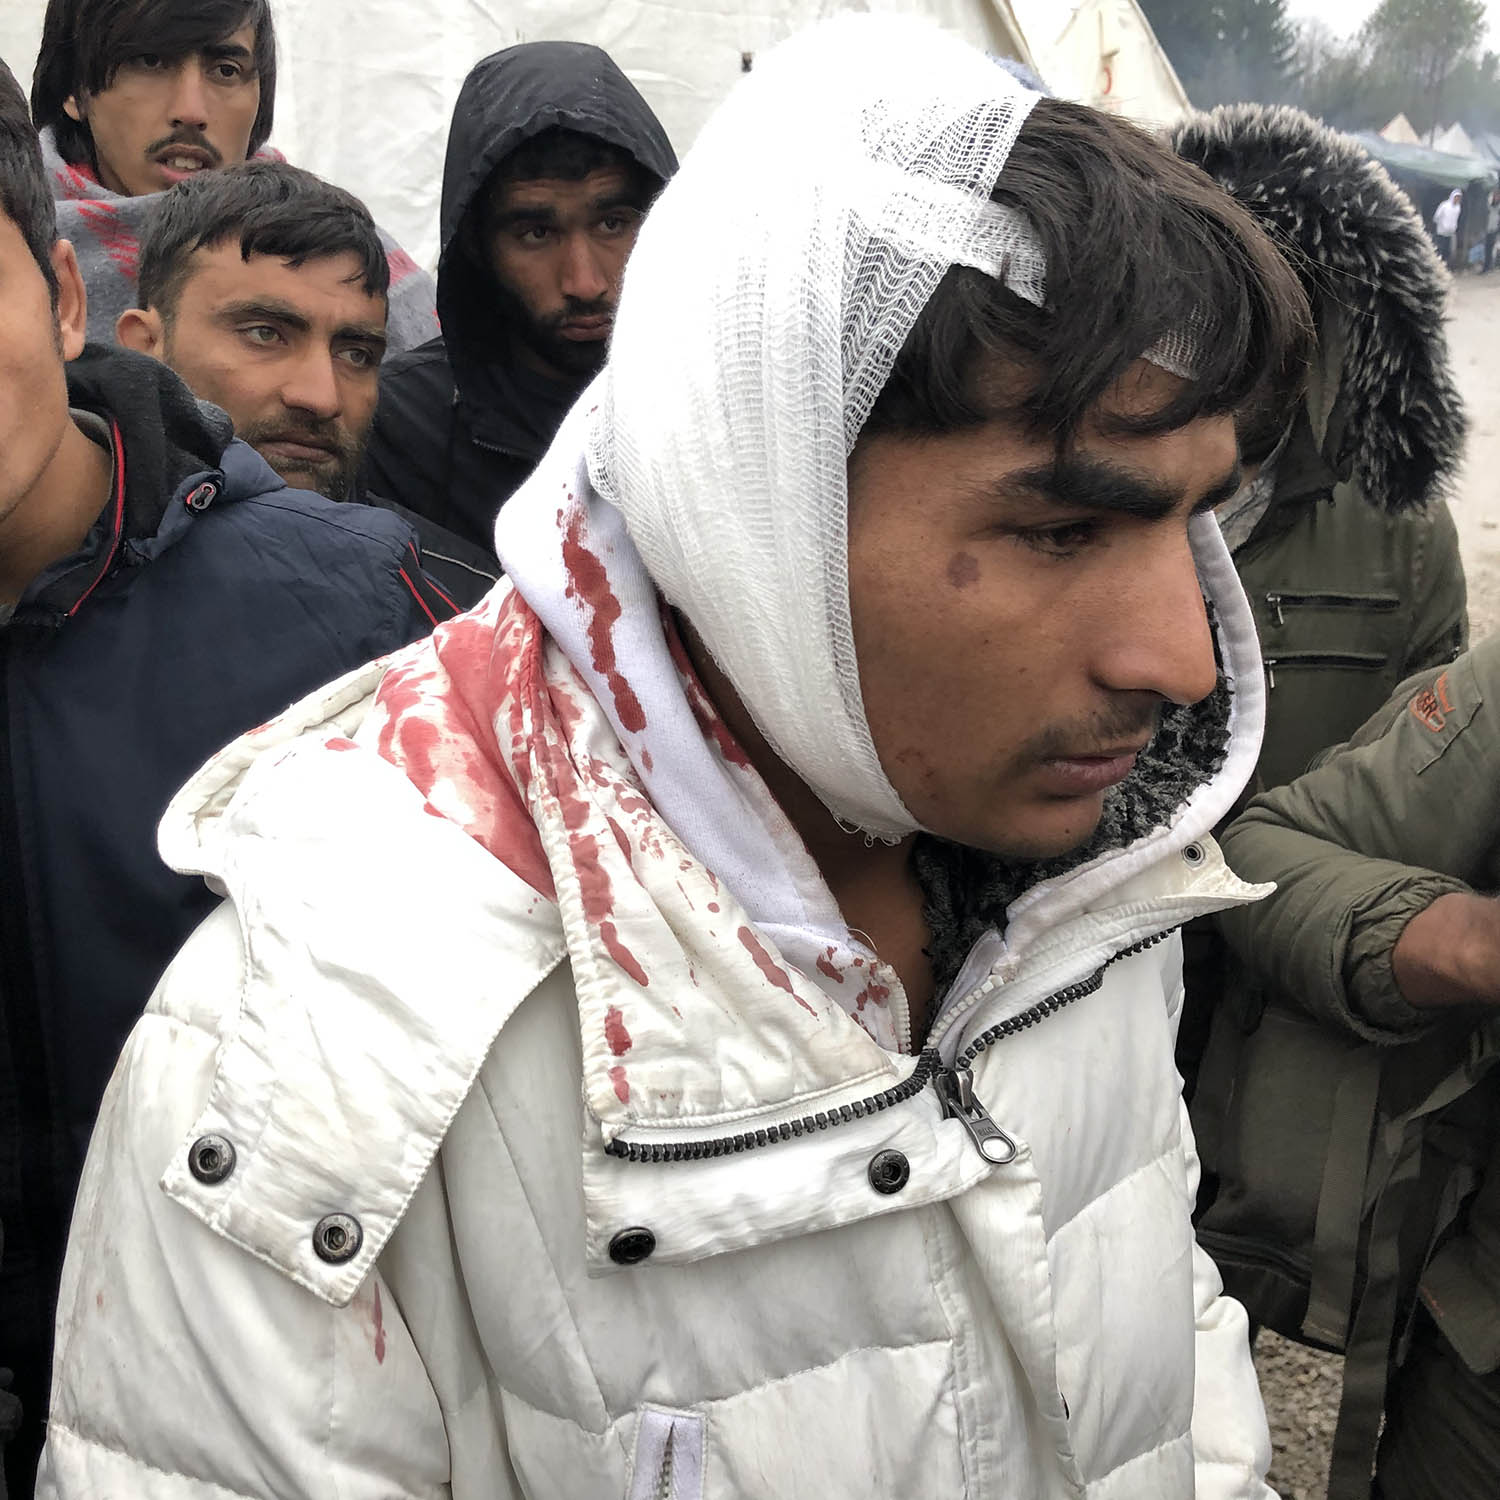 A migrant arrives at the Vucjak camp in Bosnia and Herzegovina with blood on his jacket on Oct. 31. Many migrants say they have been beaten by Croatian police while attempting to cross the Croatian-Bosnian border.